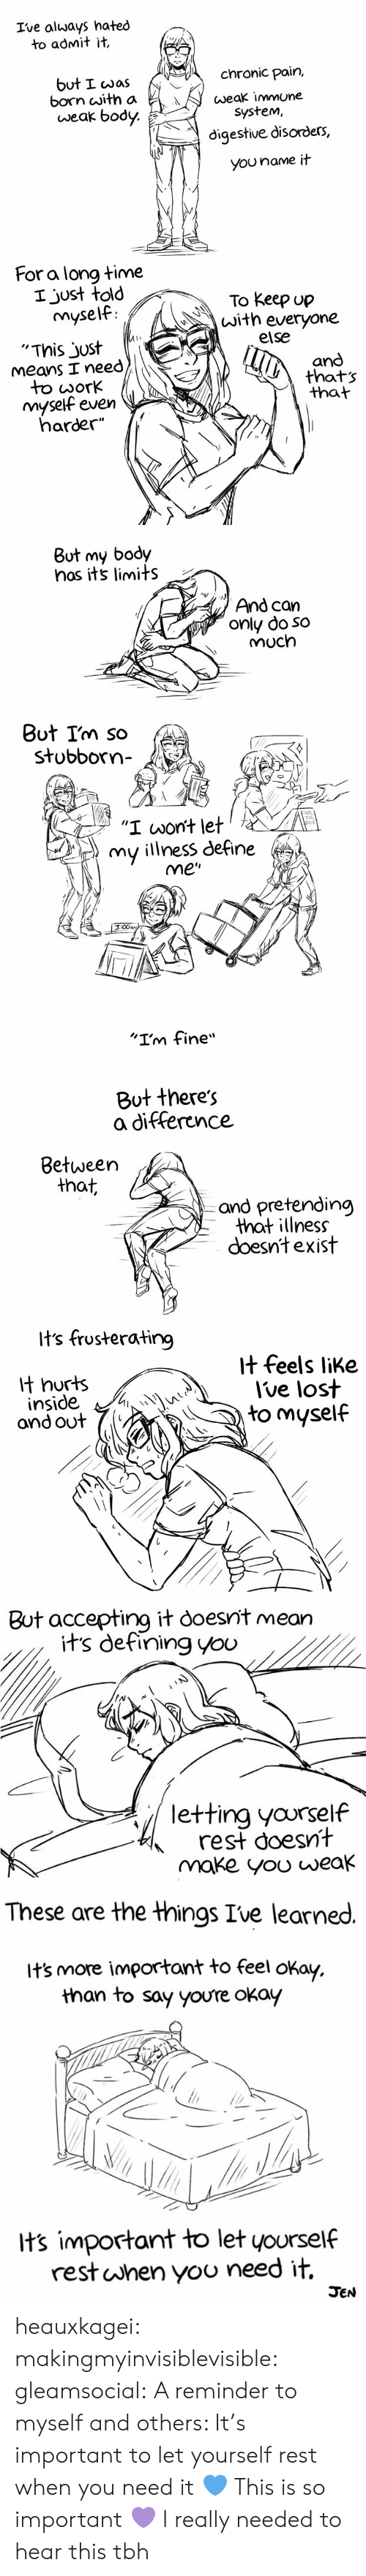 """Chronic Illness: Ive always hated  to admit it,  but I cwaschronic pain,  weak immune  born with a  weak body.  system,  digestive disorders,  You name it  For a long time  I just told  myself  To keep up  with everyone  and  that  else  '""""This just  Means I need  のthats  dork  nmyself even  harder""""   But my body  nos its limits  And can  only do so  Much  Out Im so  stobbor""""  C,  upu  THE  """"I wont let  my illness define  me""""  3:00  """"I'm fine""""   But there's  a difference  Between  that,  and pretending  that illness  doesnt exist  Its frusterating  it feels like  lt hurts  inside  ond out  Ive lost  to myself  1   But accepting it doesnit mean  its defining you  letting yovrself  rest doesnt  make yoo weak  These are the things Ive learned.  its more important to feel okay.  than to say youre okay  its important to let yourself  rest uJhen yoo need it,  JEN heauxkagei:  makingmyinvisiblevisible:  gleamsocial: A reminder to myself and others: It's important to let yourself rest when you need it 💙  This is so important 💜   I really needed to hear this tbh"""